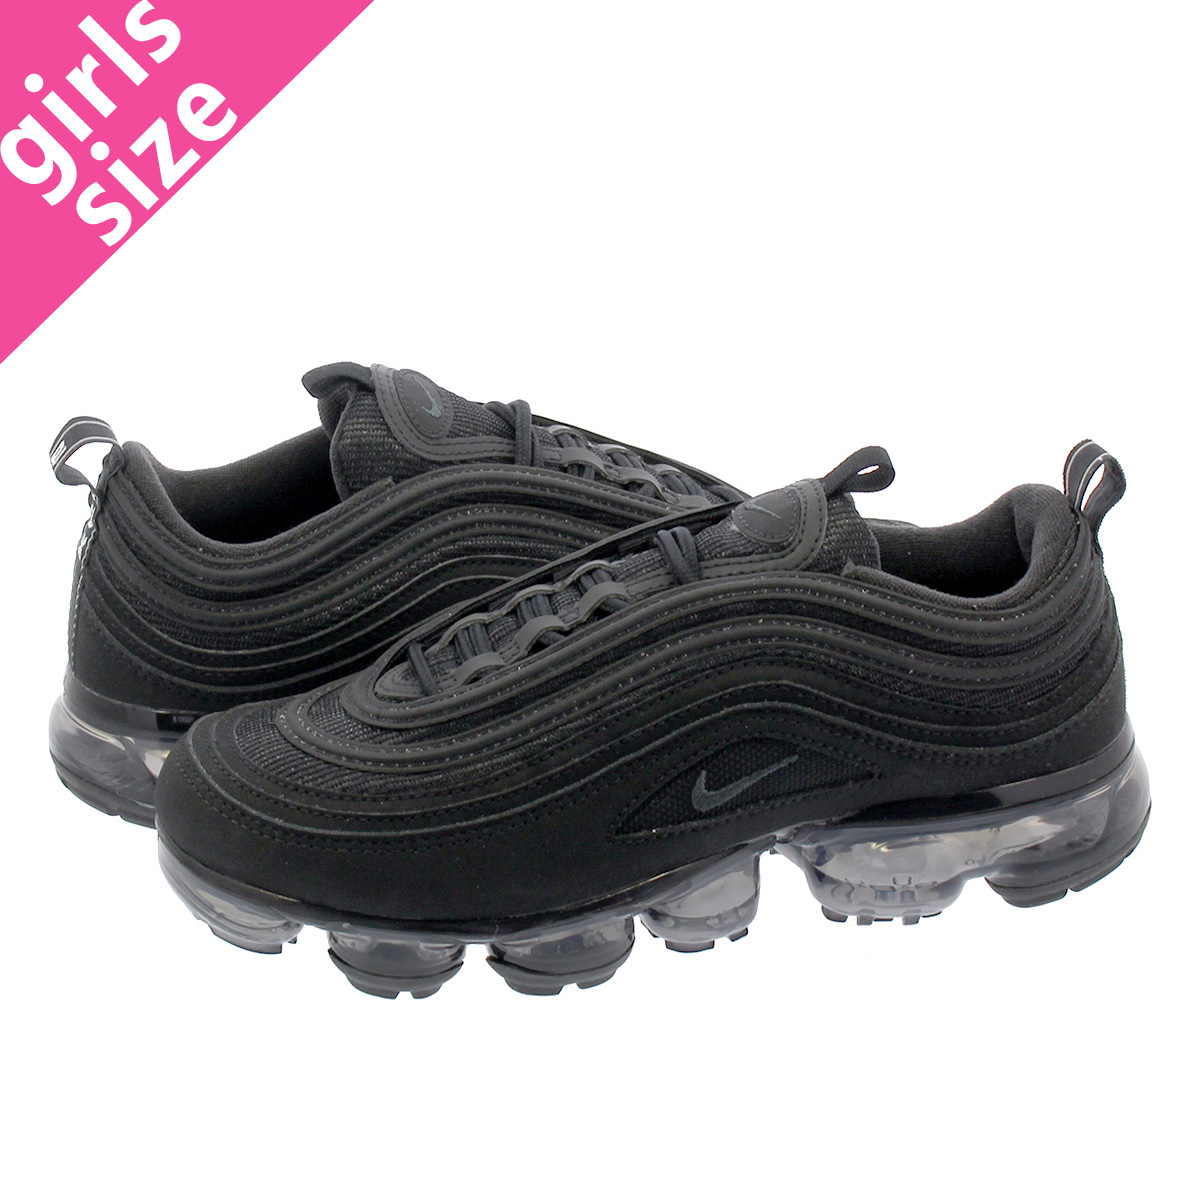 finest selection 3087f 0a1be NIKE AIR VAPORMAX 97 GS Nike air vapor max 97 GS BLACK/BLACK aq2657-001